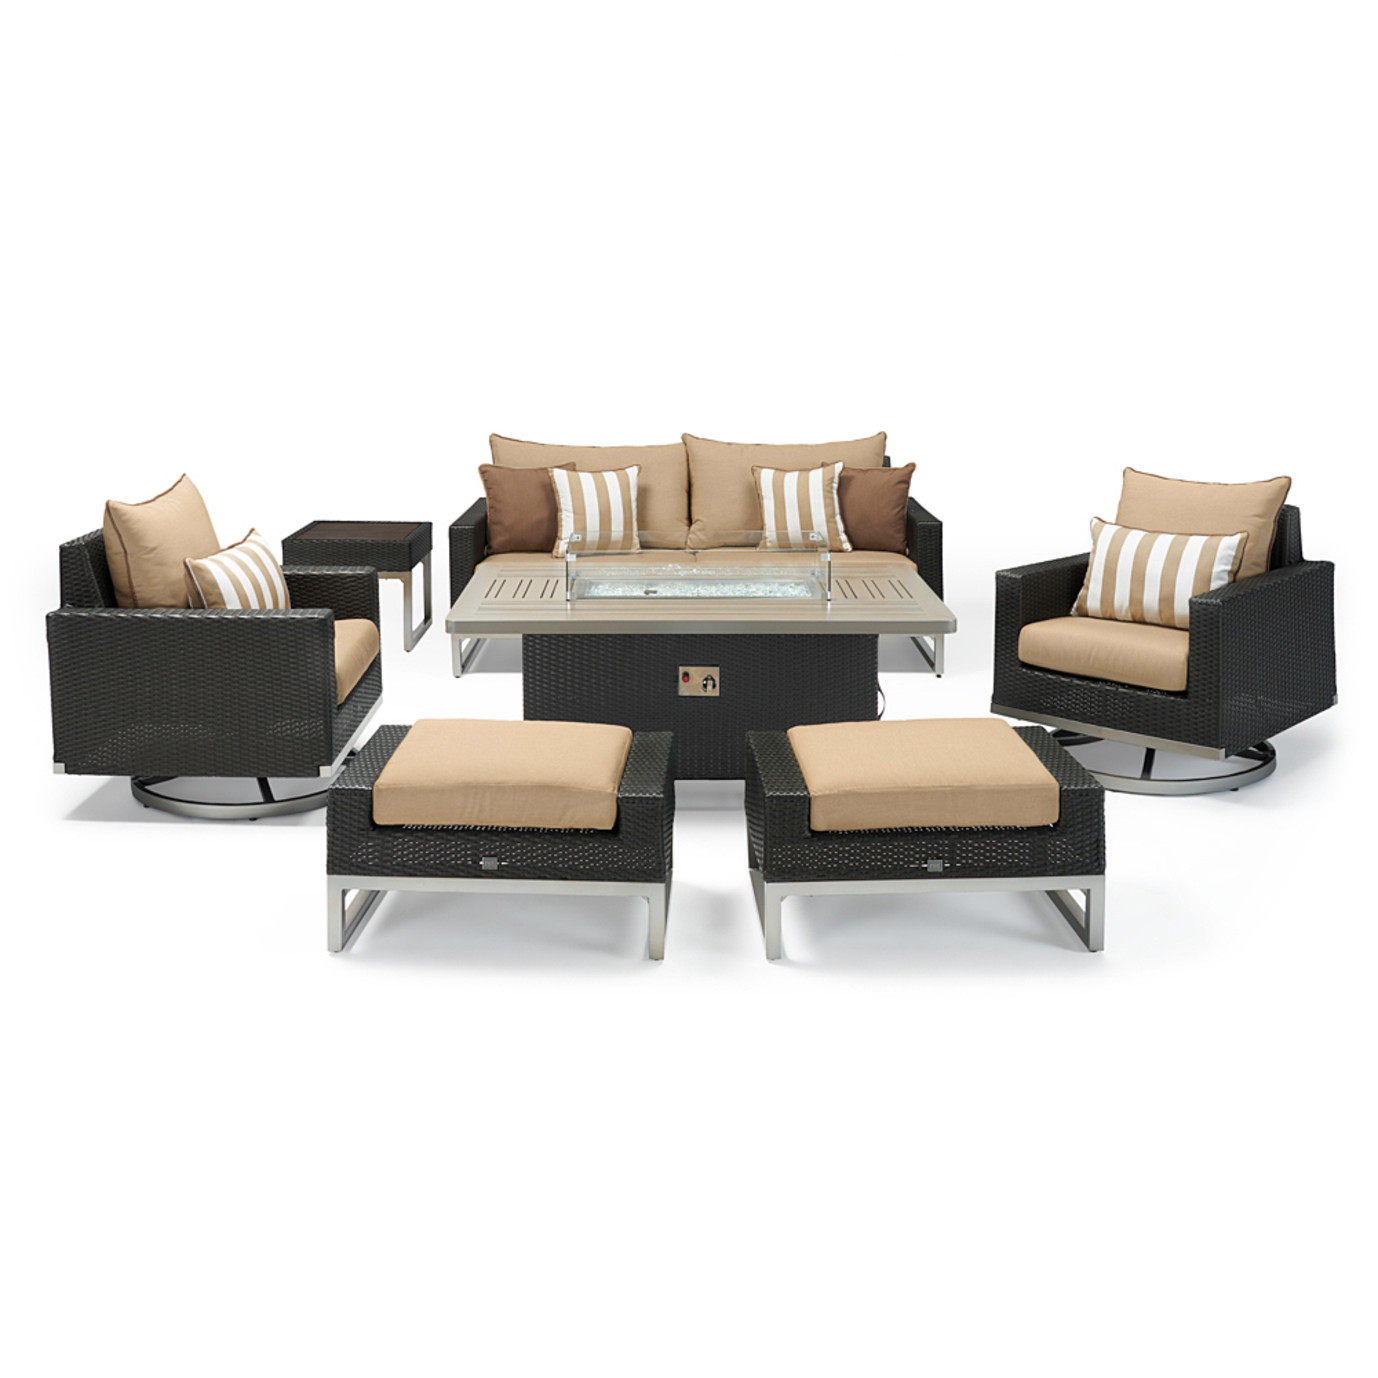 Milo™ Espresso 7 Piece Motion Fire Set - Maxim Beige